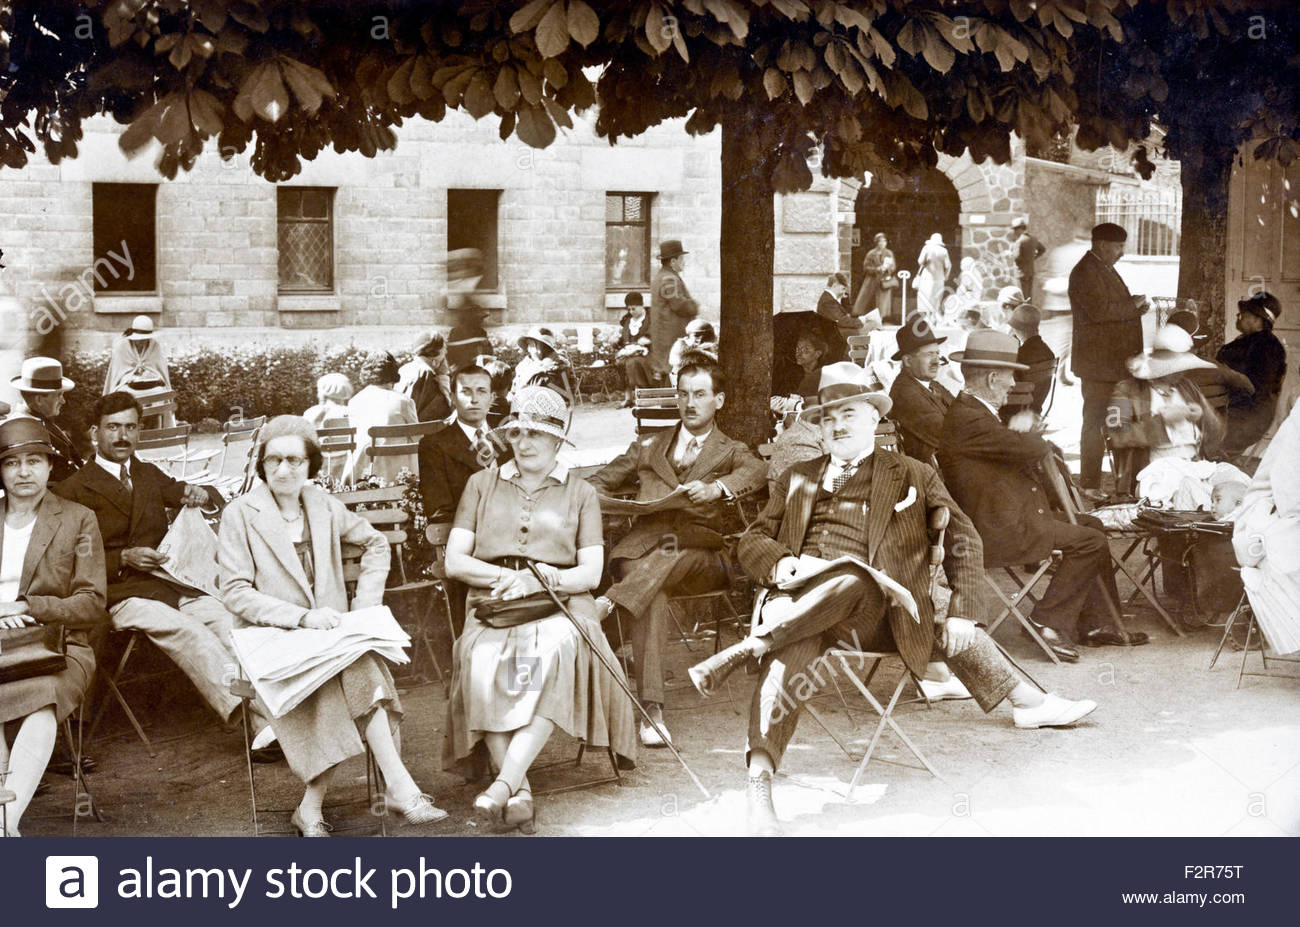 outdoors terrace France  c 1920s - Stock Image